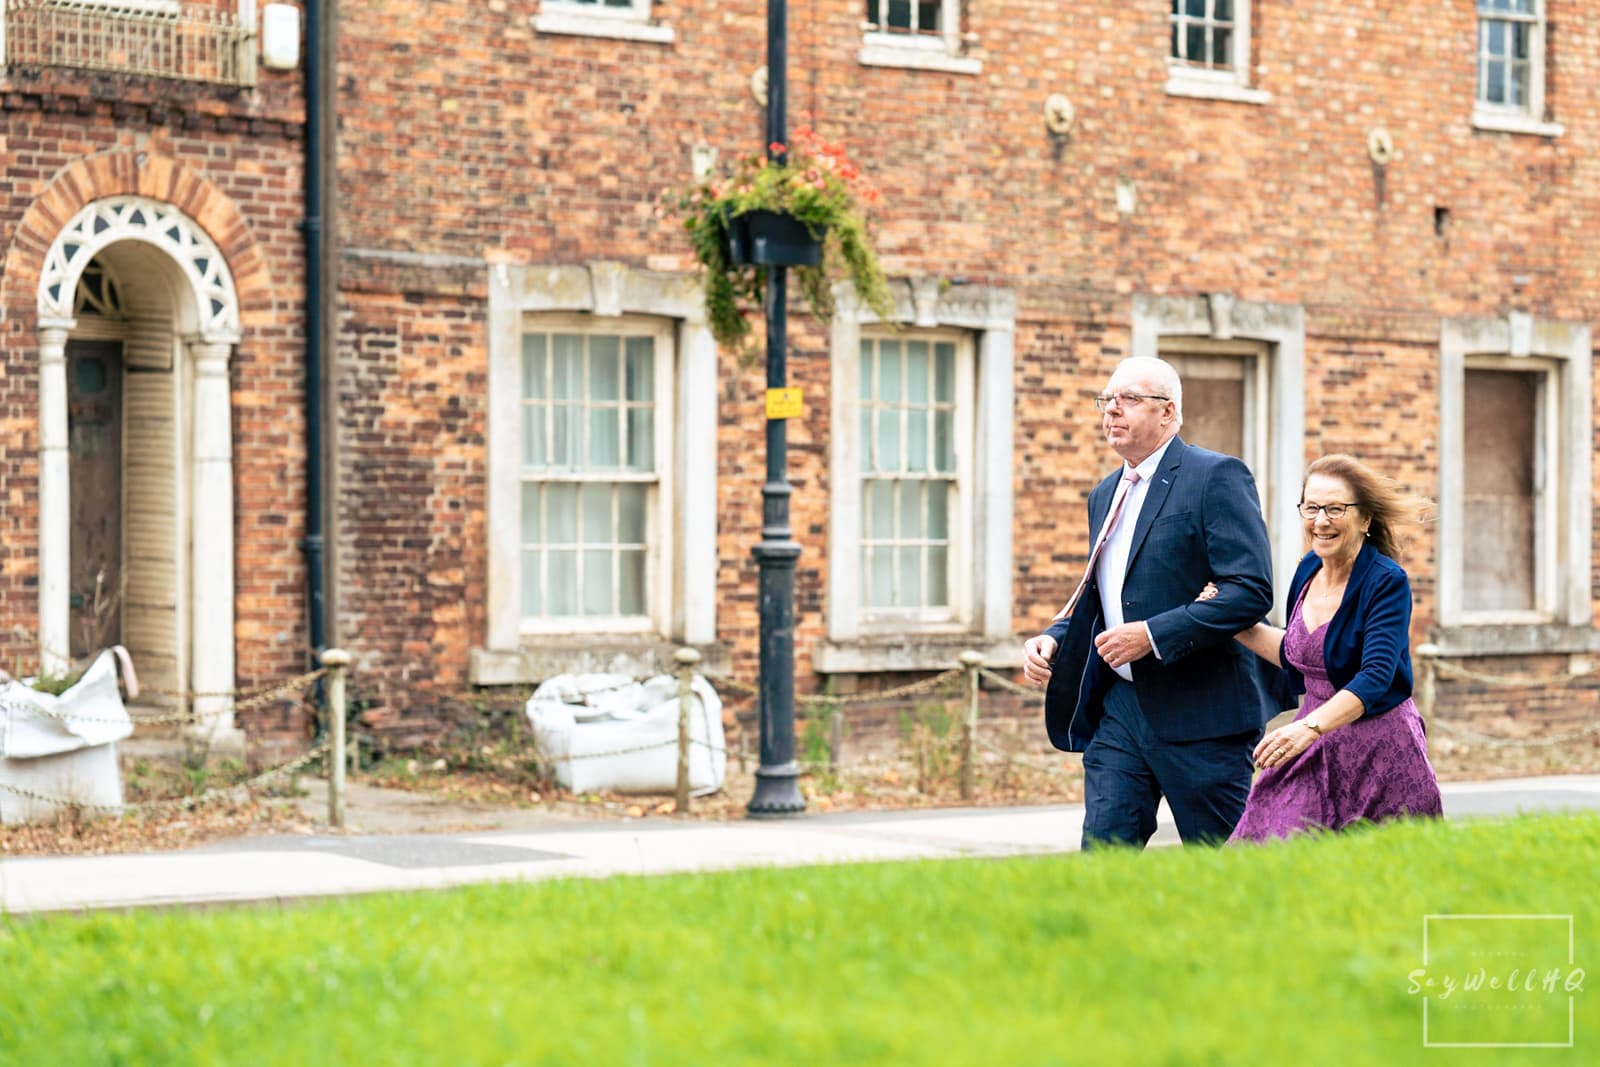 Lincoln Wedding Photography + Spilsby Church Wedding Photographer + Wedding guests arrive for the Lincoln Church Wedding